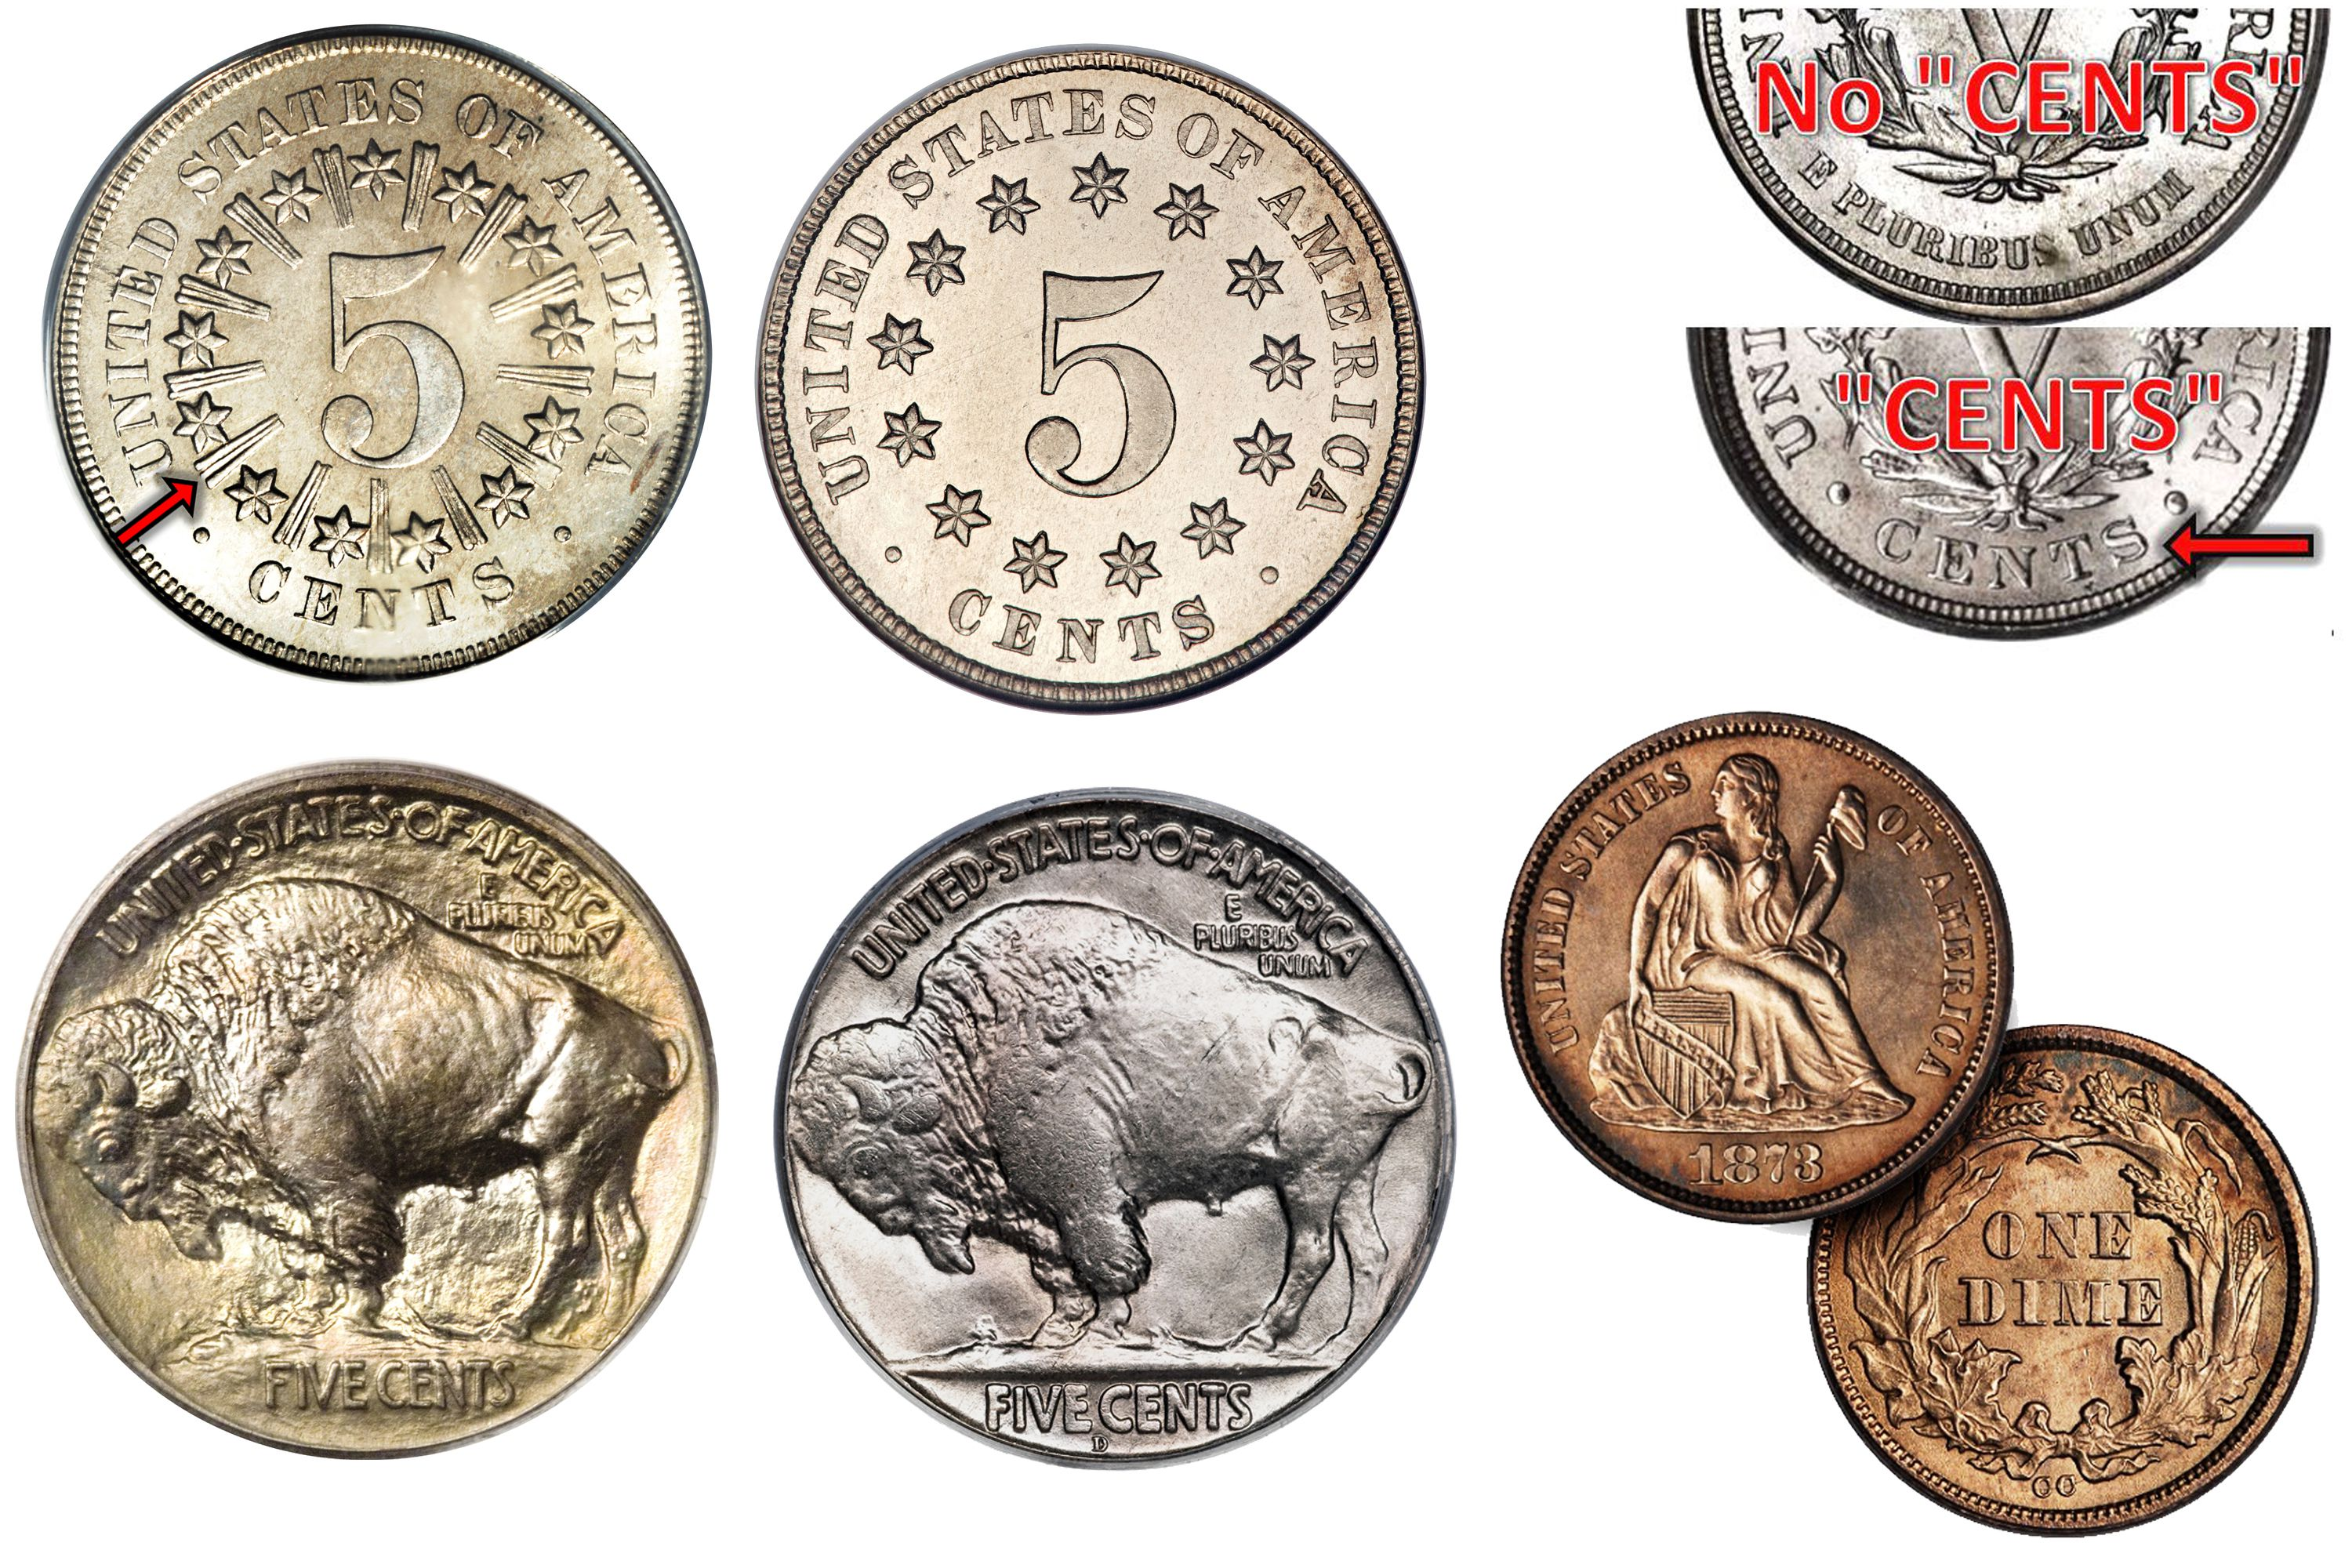 The Complete Type Set Of United States Coins